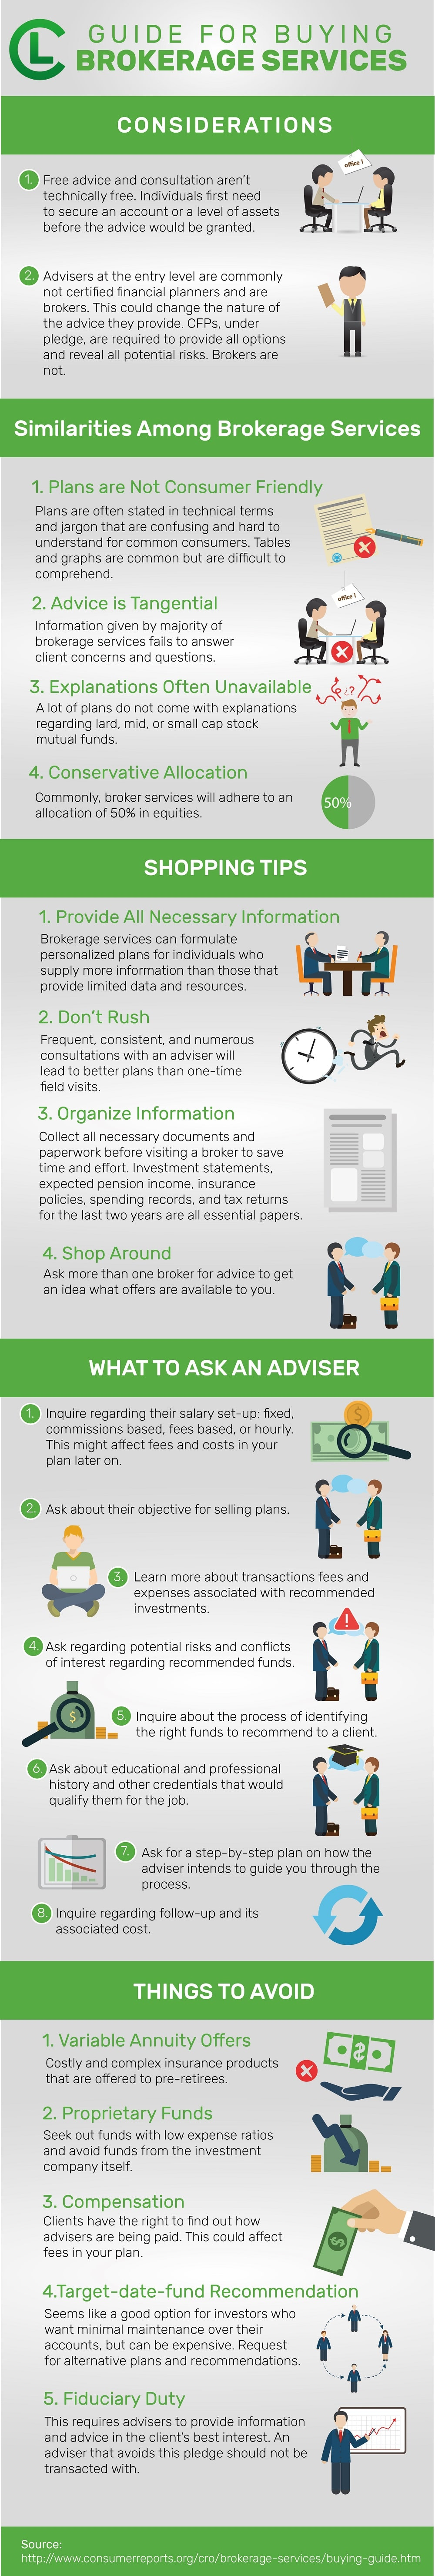 Guide For Choosing A Brokerage Service Infographic